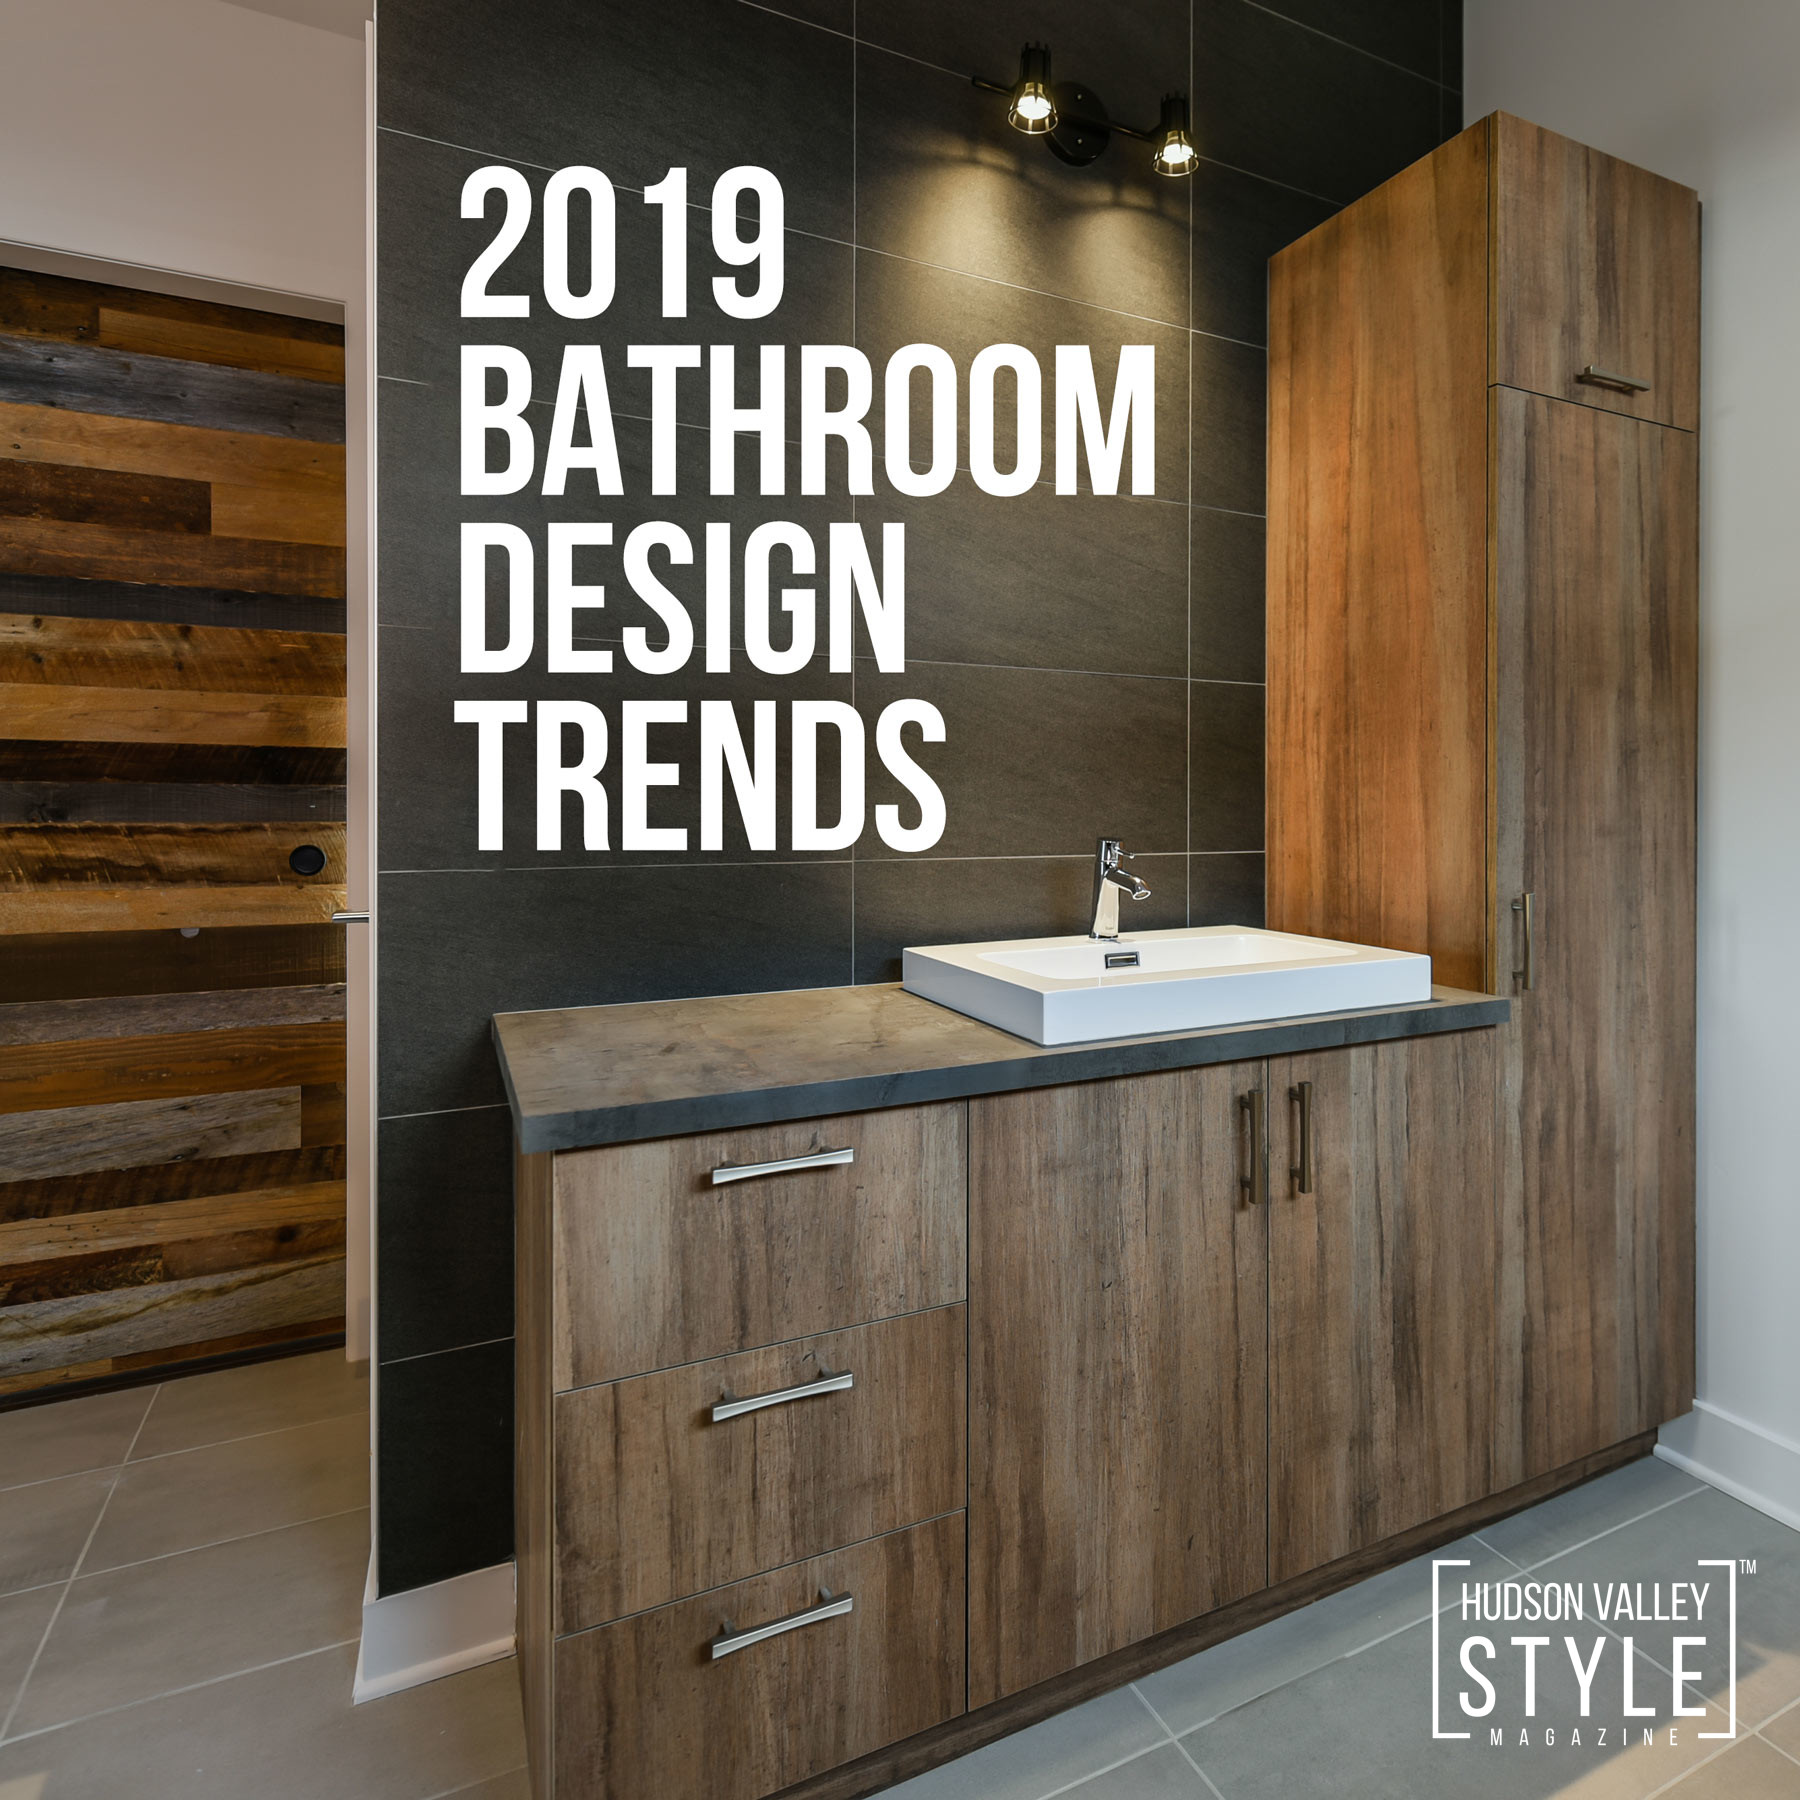 2019 Bathroom Design Trends Bathroom Design Ideas Hudson Valley Style Magazine